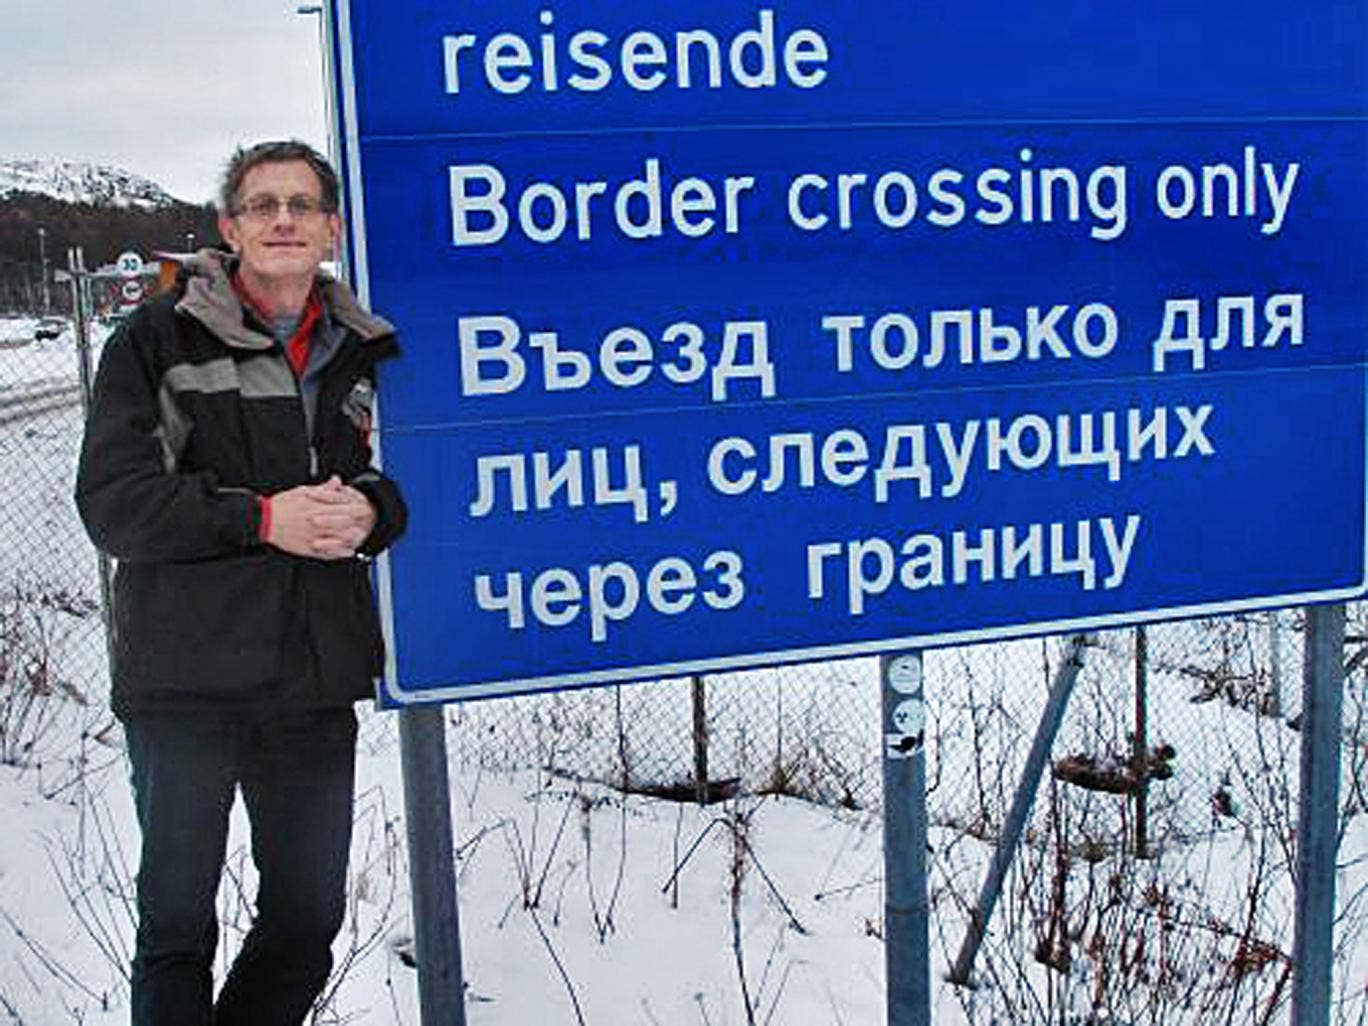 Wild frontier: the only crossing between Russia and Norway